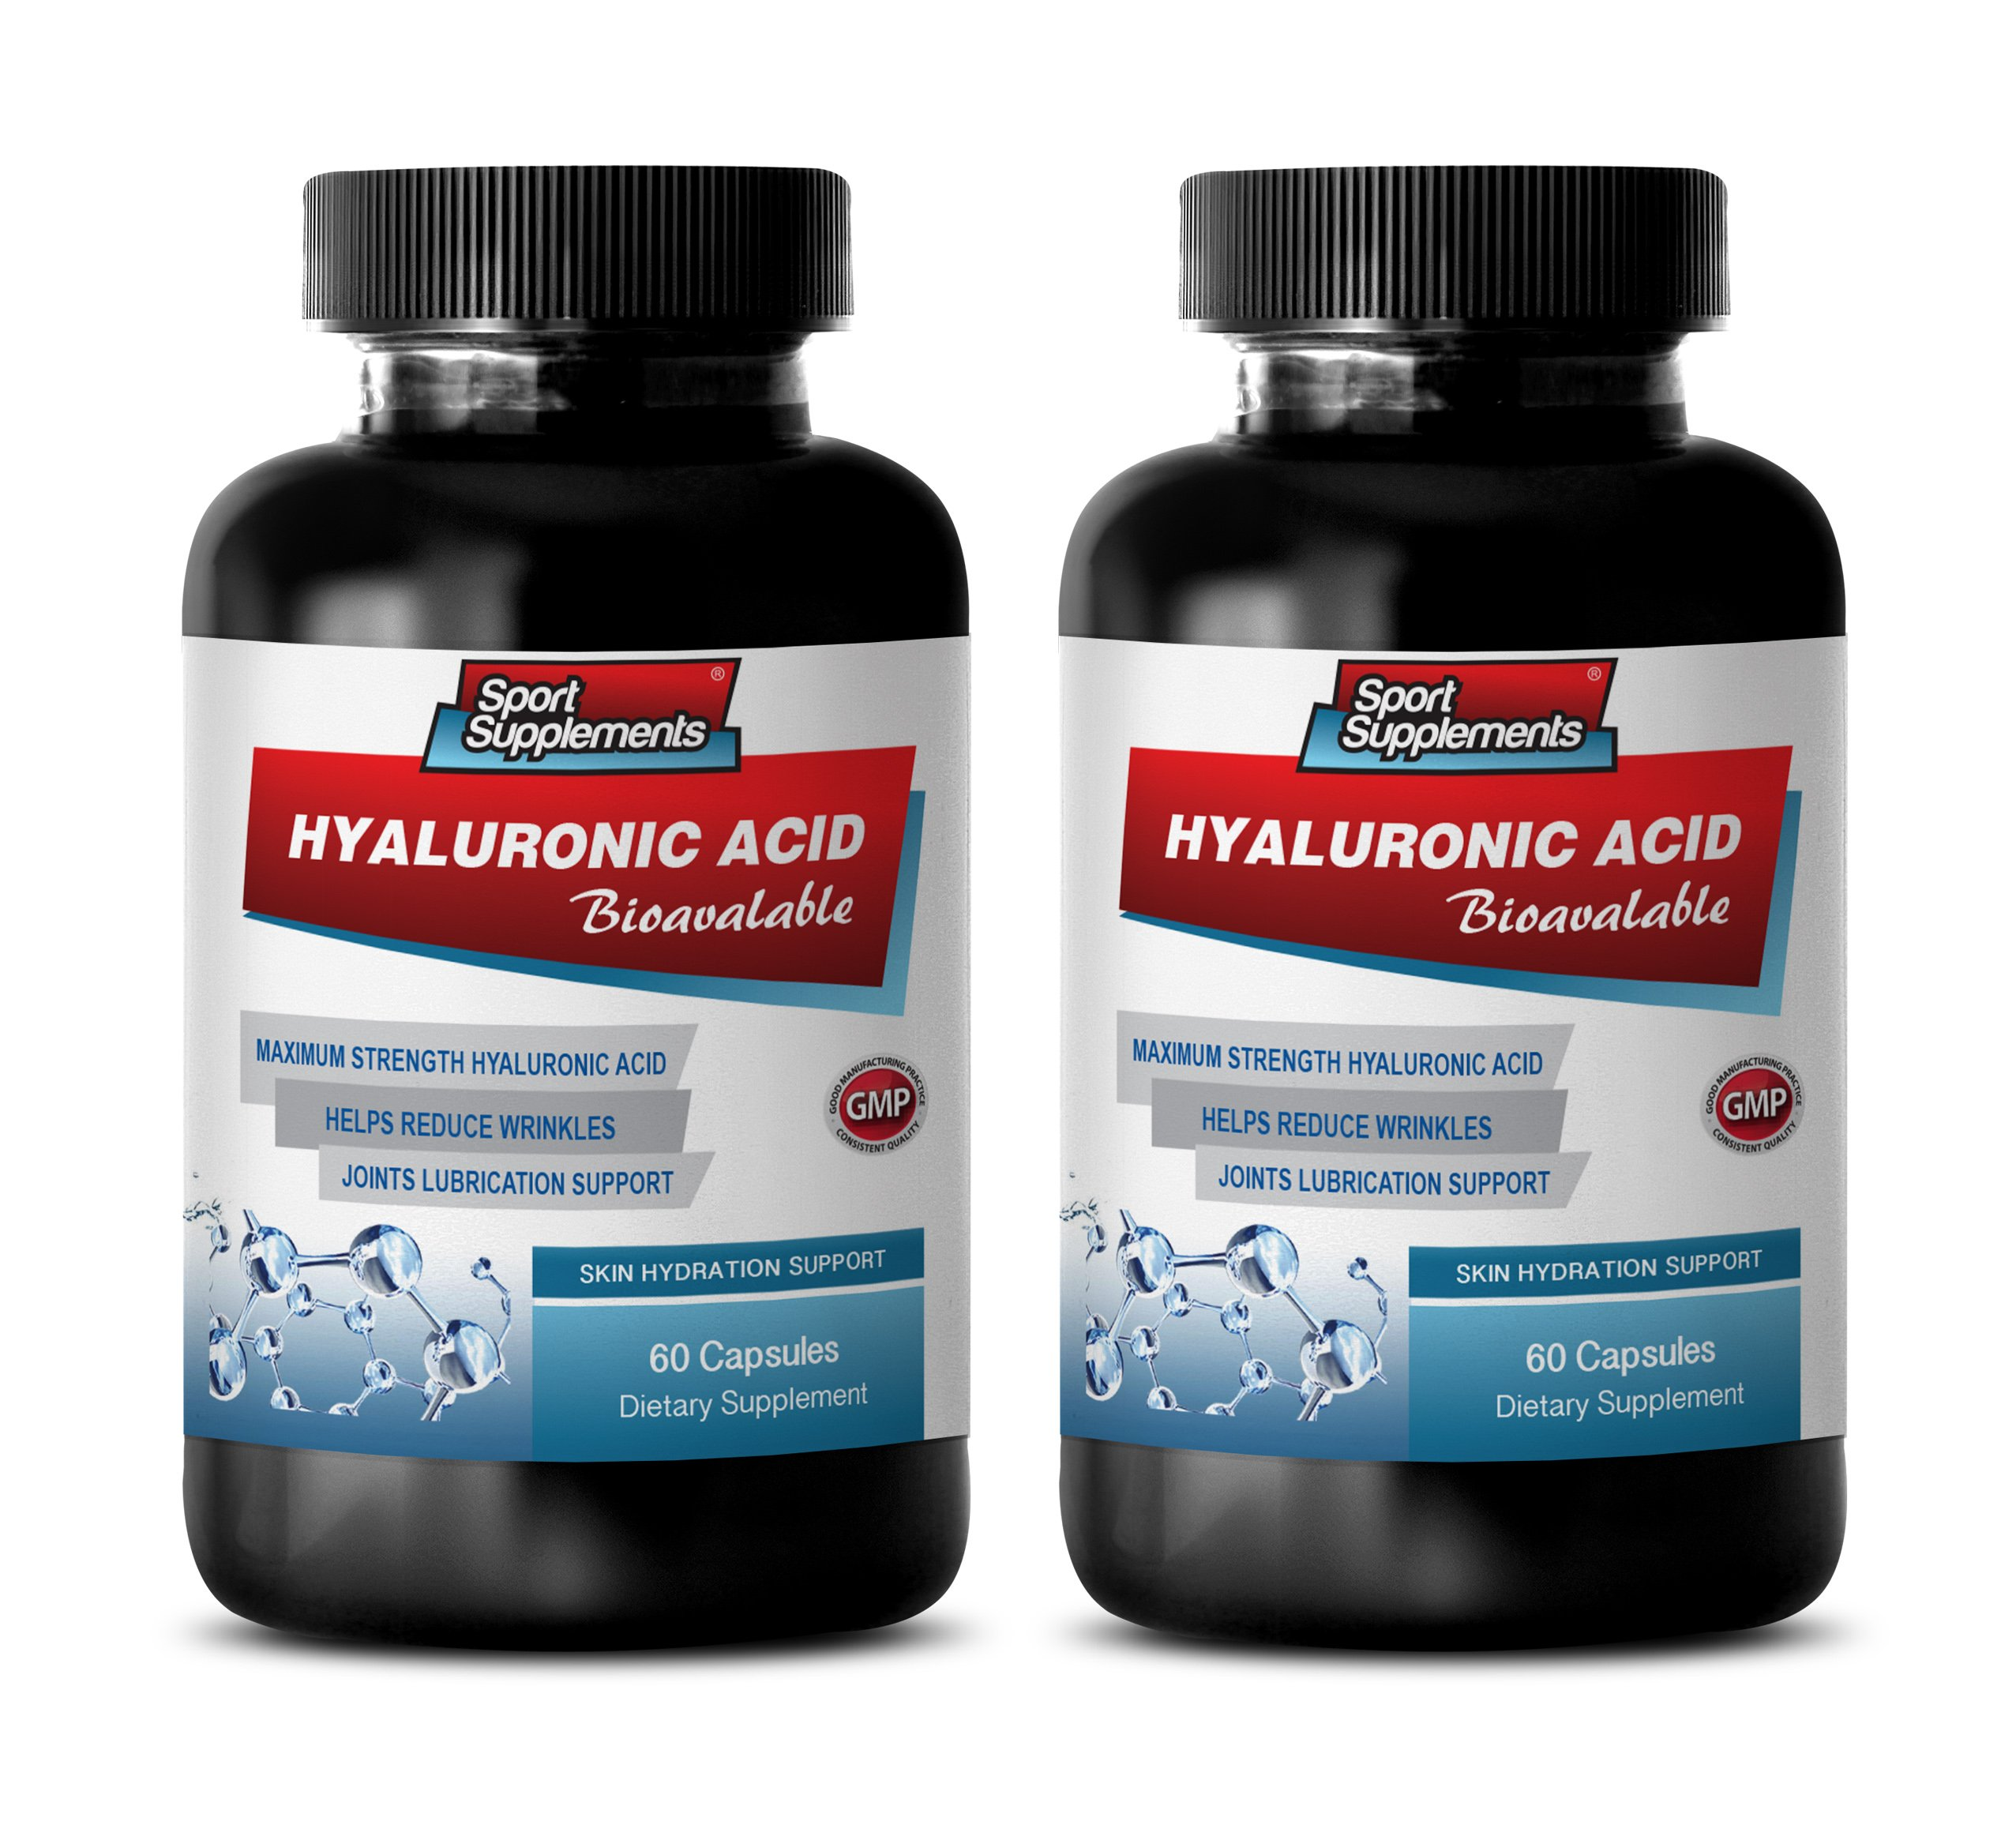 Anti Wrinkle Pills - HYALURONIC Acid BIO-Available - Skin Hydration Support - hyaluronic Acid Joint Support - 2 Bottles 120 Capsules